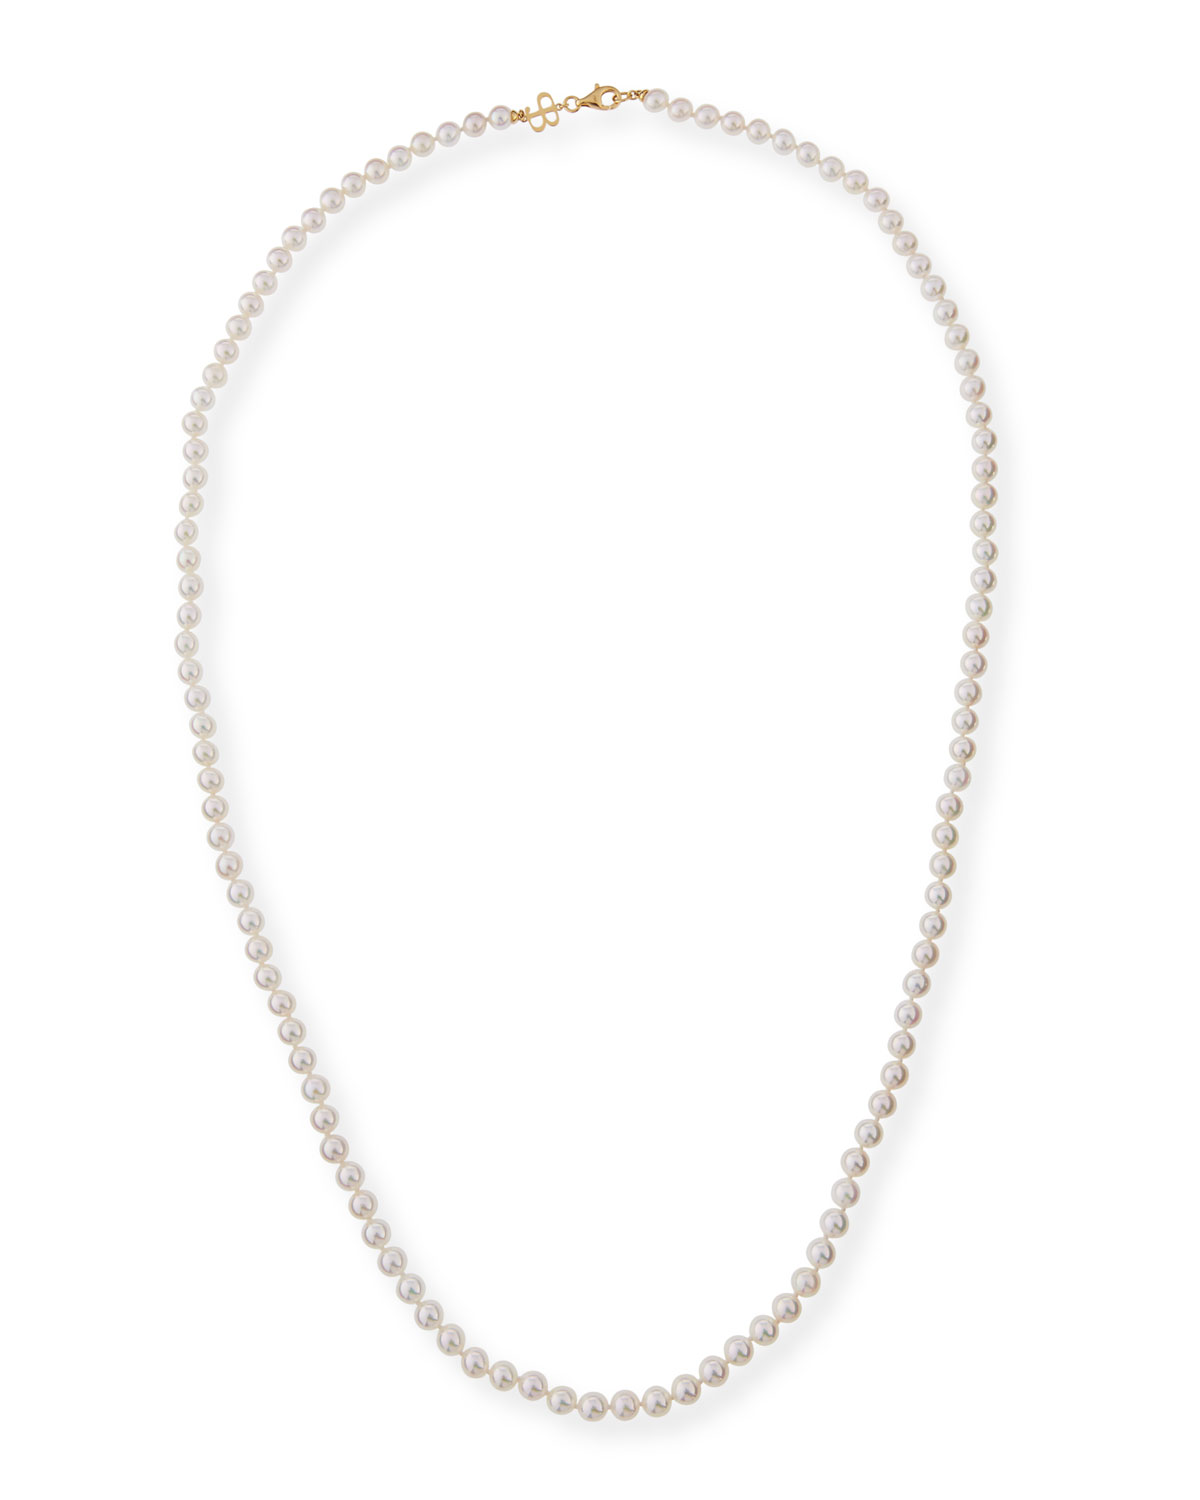 """Belpearl Accessories 7.5MM AKOYA PEARL NECKLACE IN 18K YELLOW GOLD, 36""""L"""